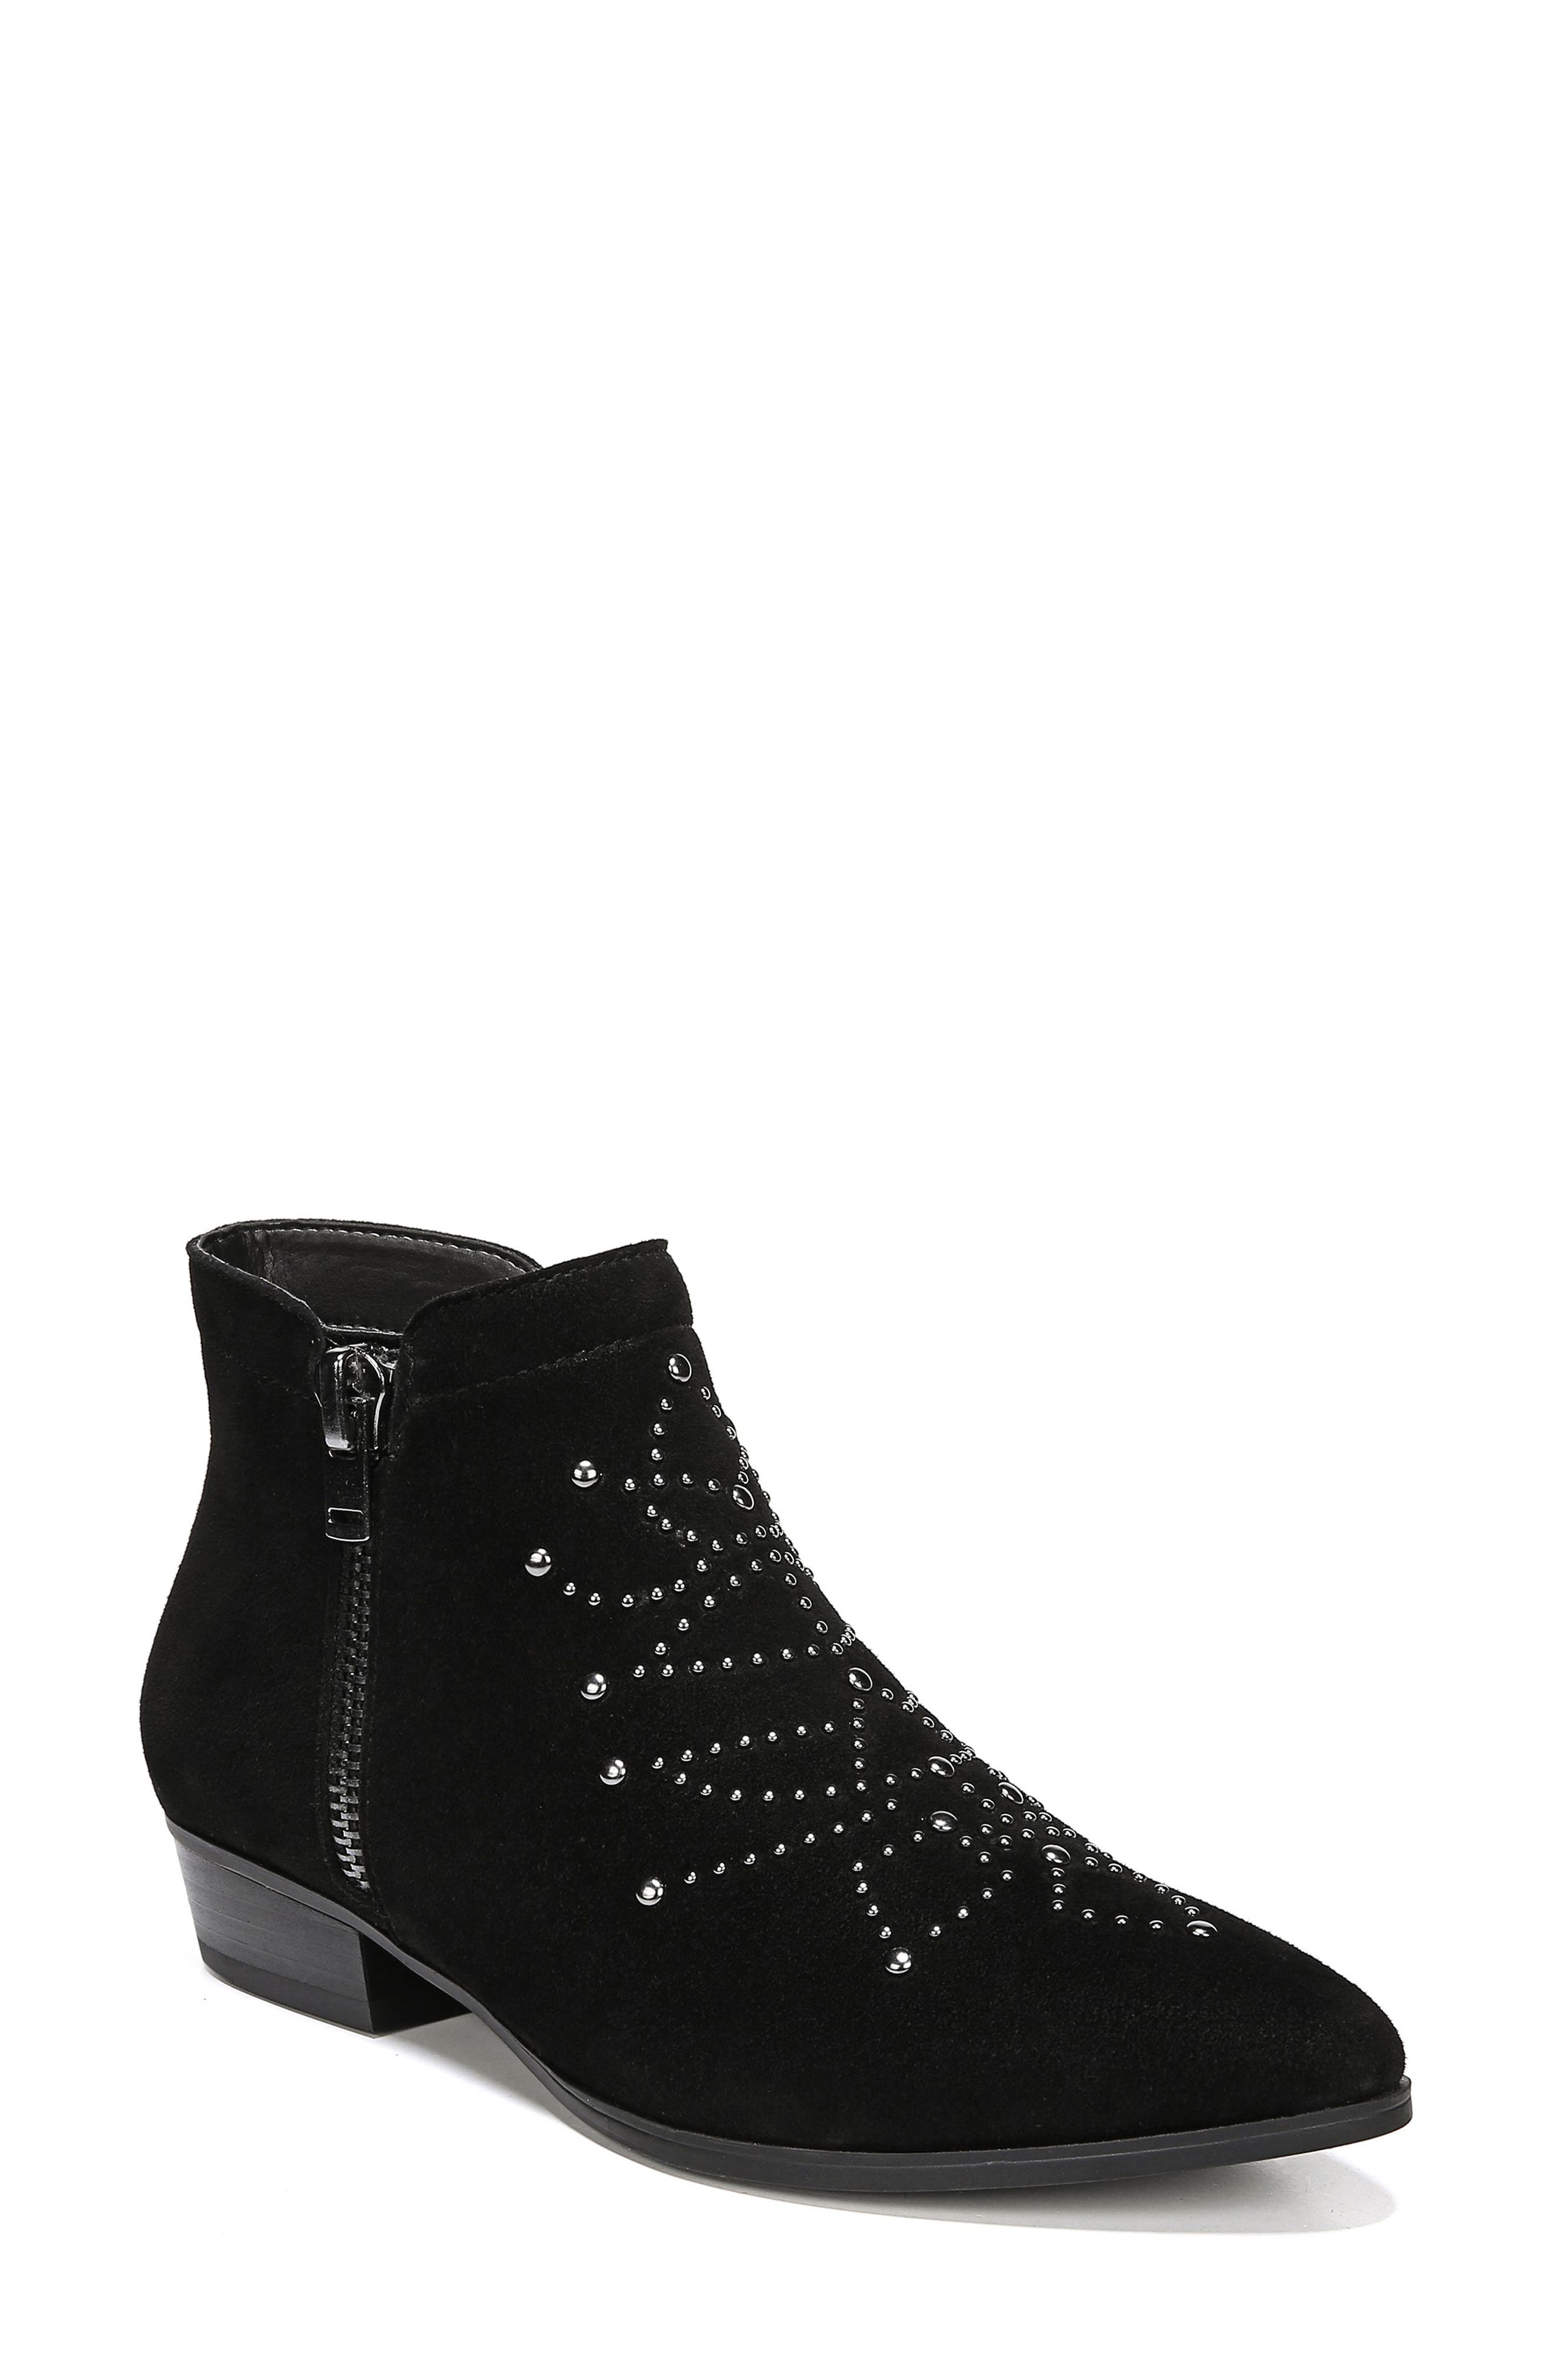 Naturalizer Blair Ii Ankle Bootie